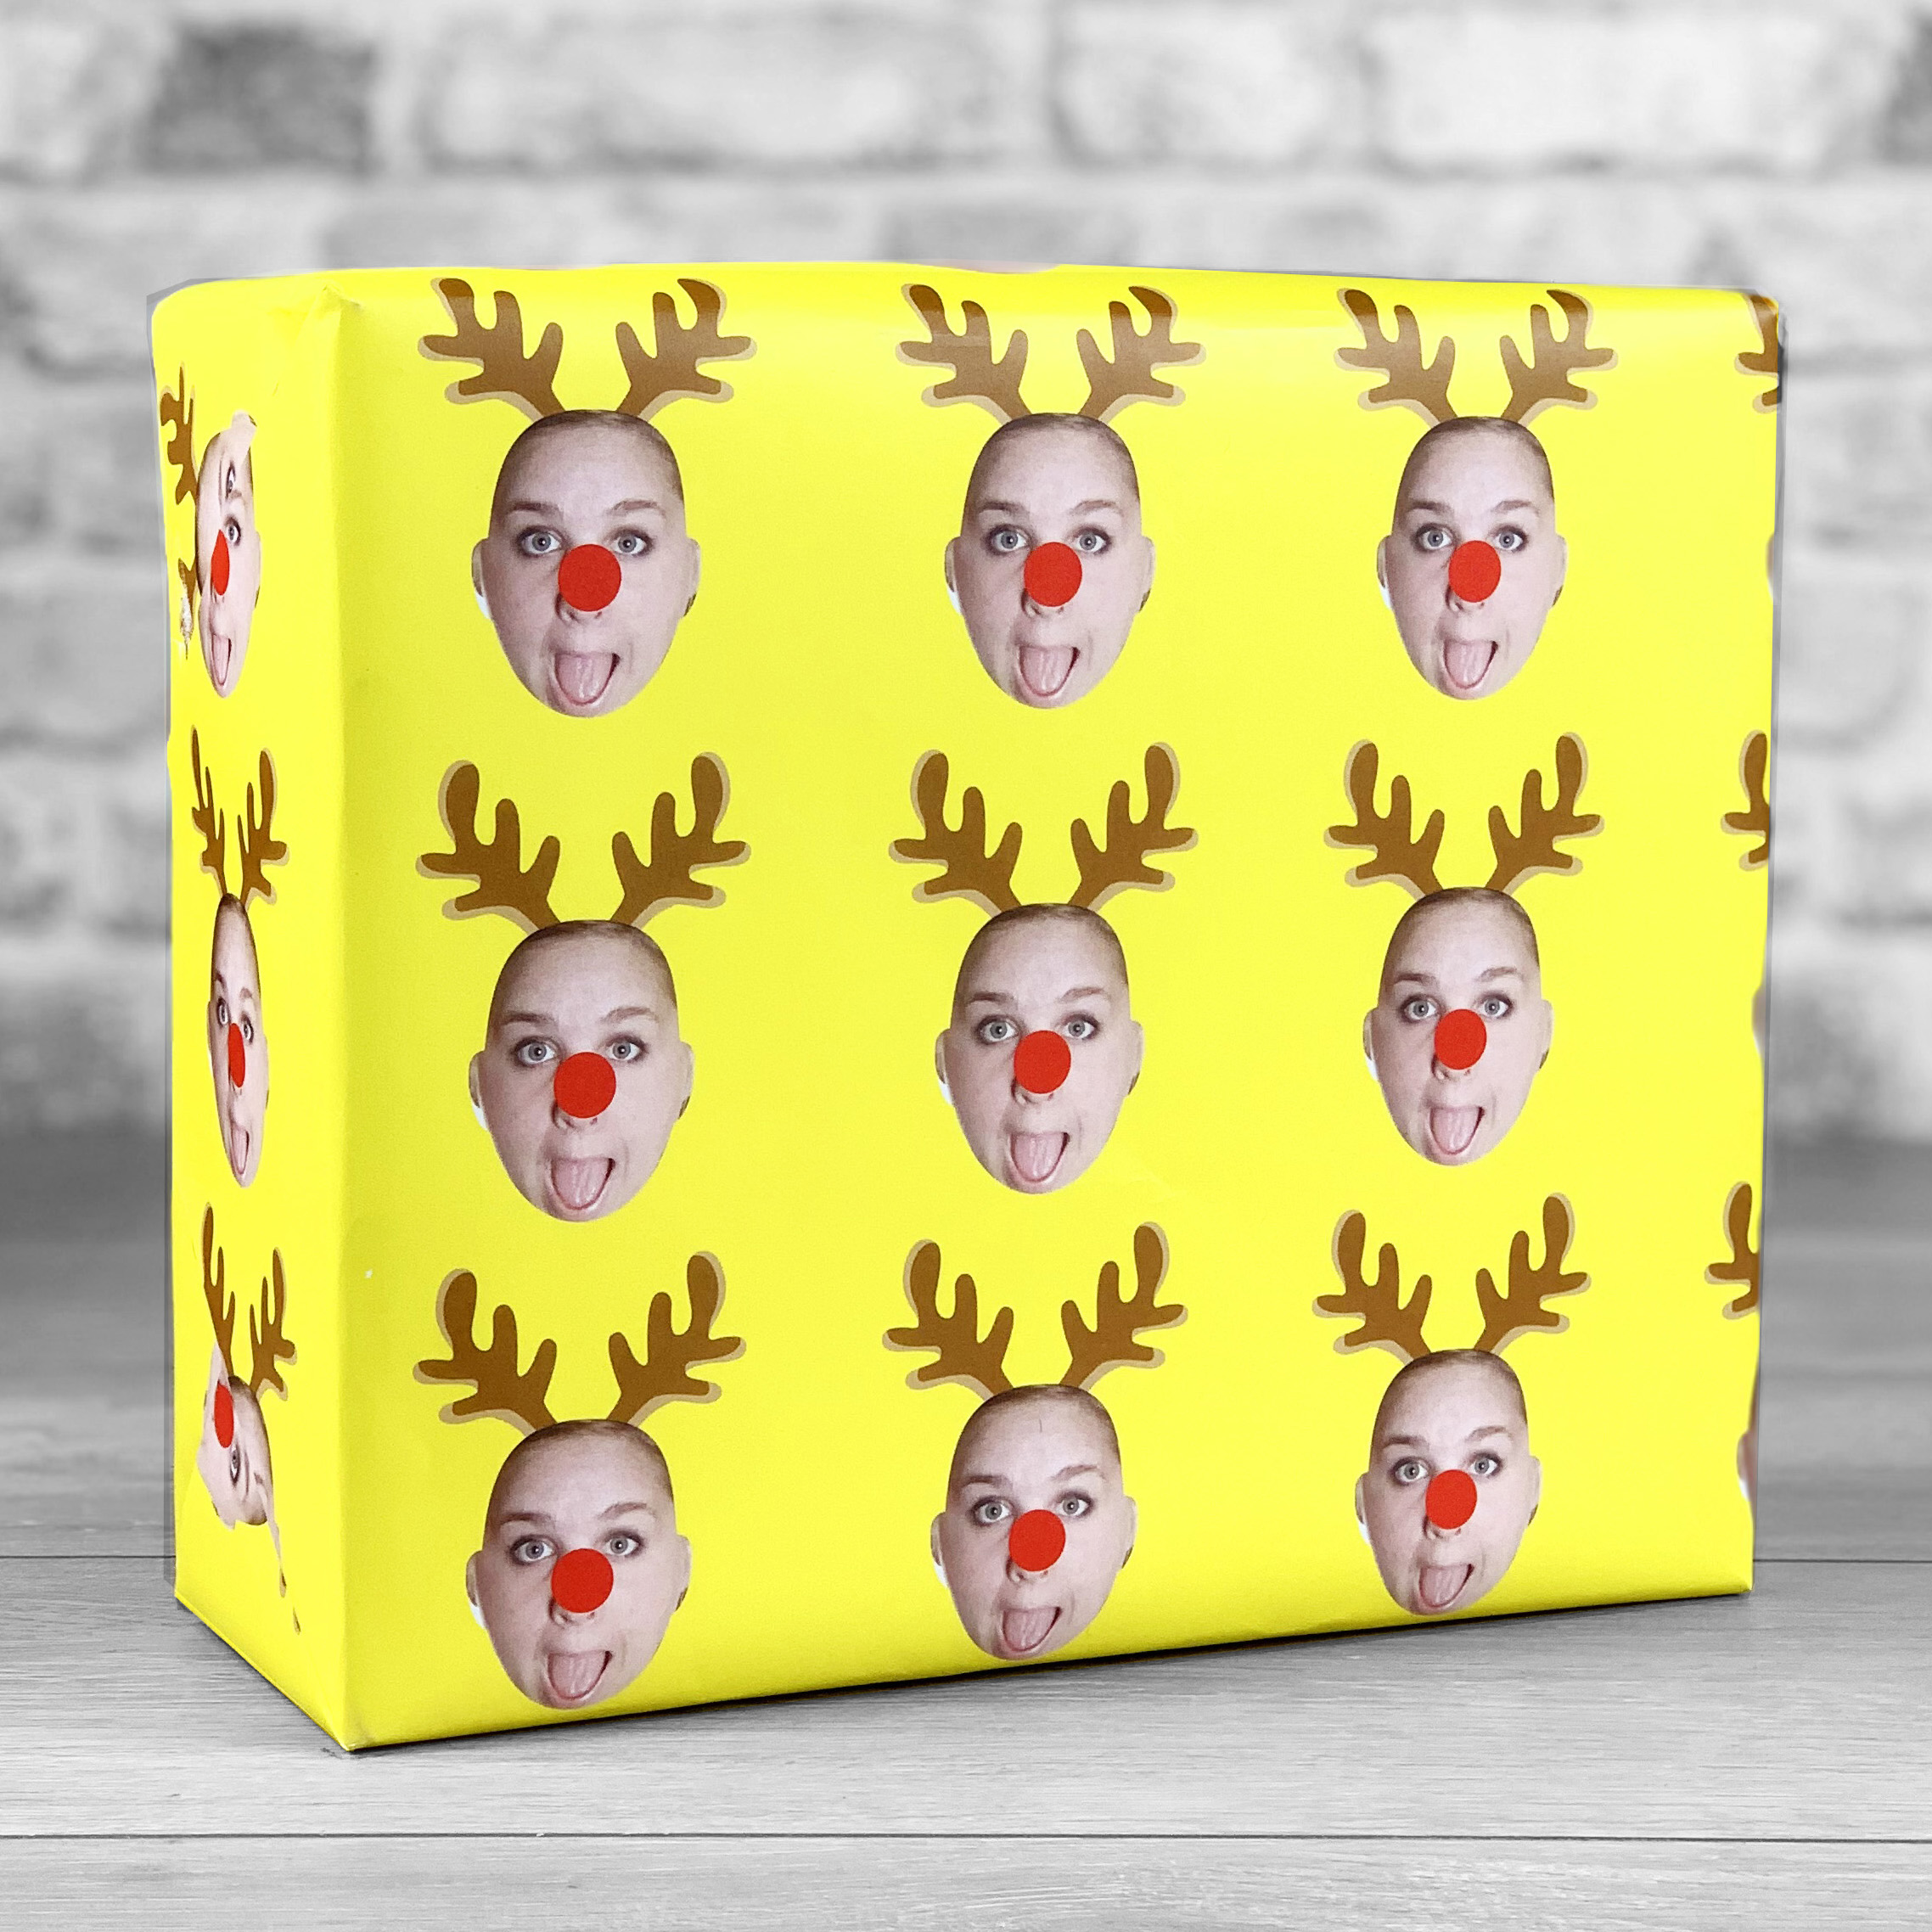 Reindeer Antlers Yellow Gift Wrap with Face Upload